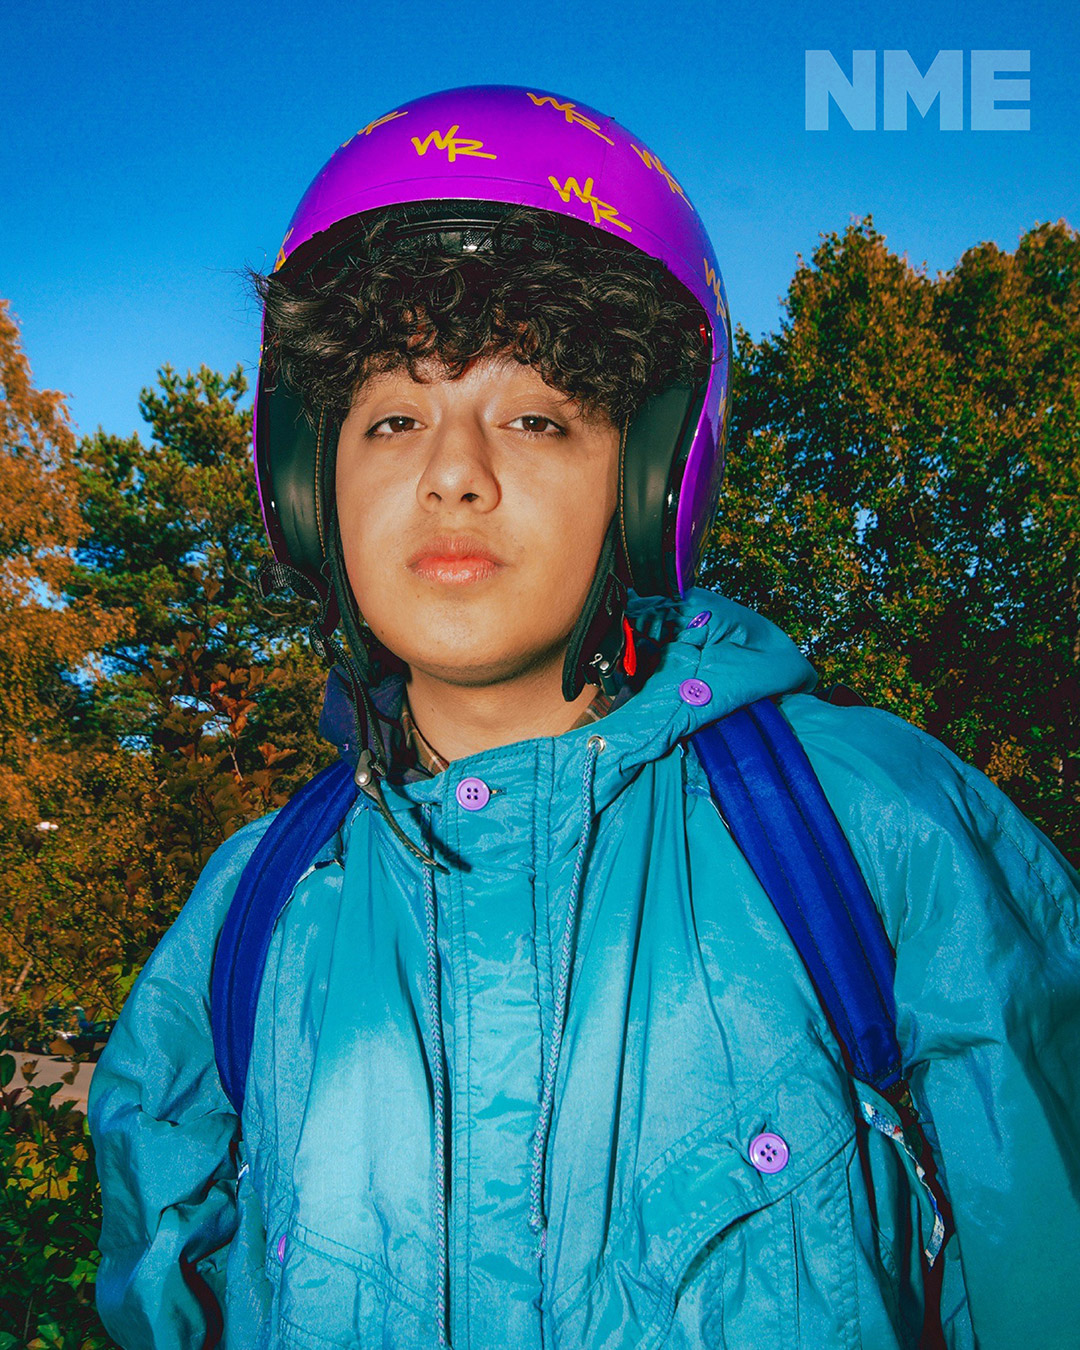 Boy Pablo NME Cover 2020